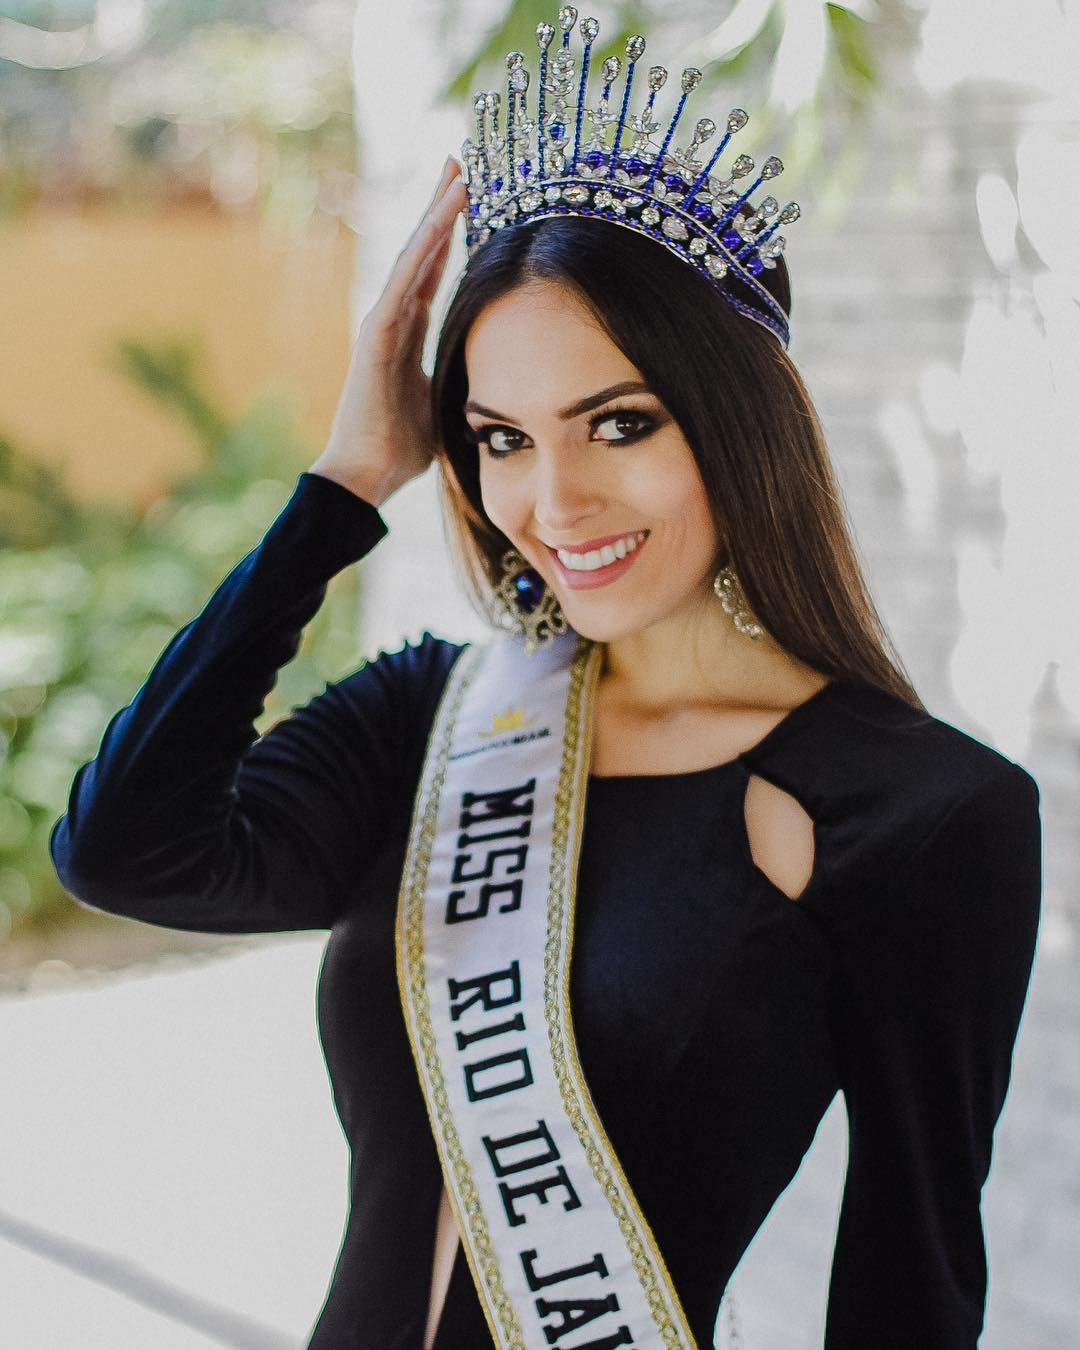 gabrielle vilela, top 2 de reyna hispanoamericana 2019/top 20 de miss grand international 2018/top 40 de miss world 2017/reyna internacional ganaderia 2013.  20225510